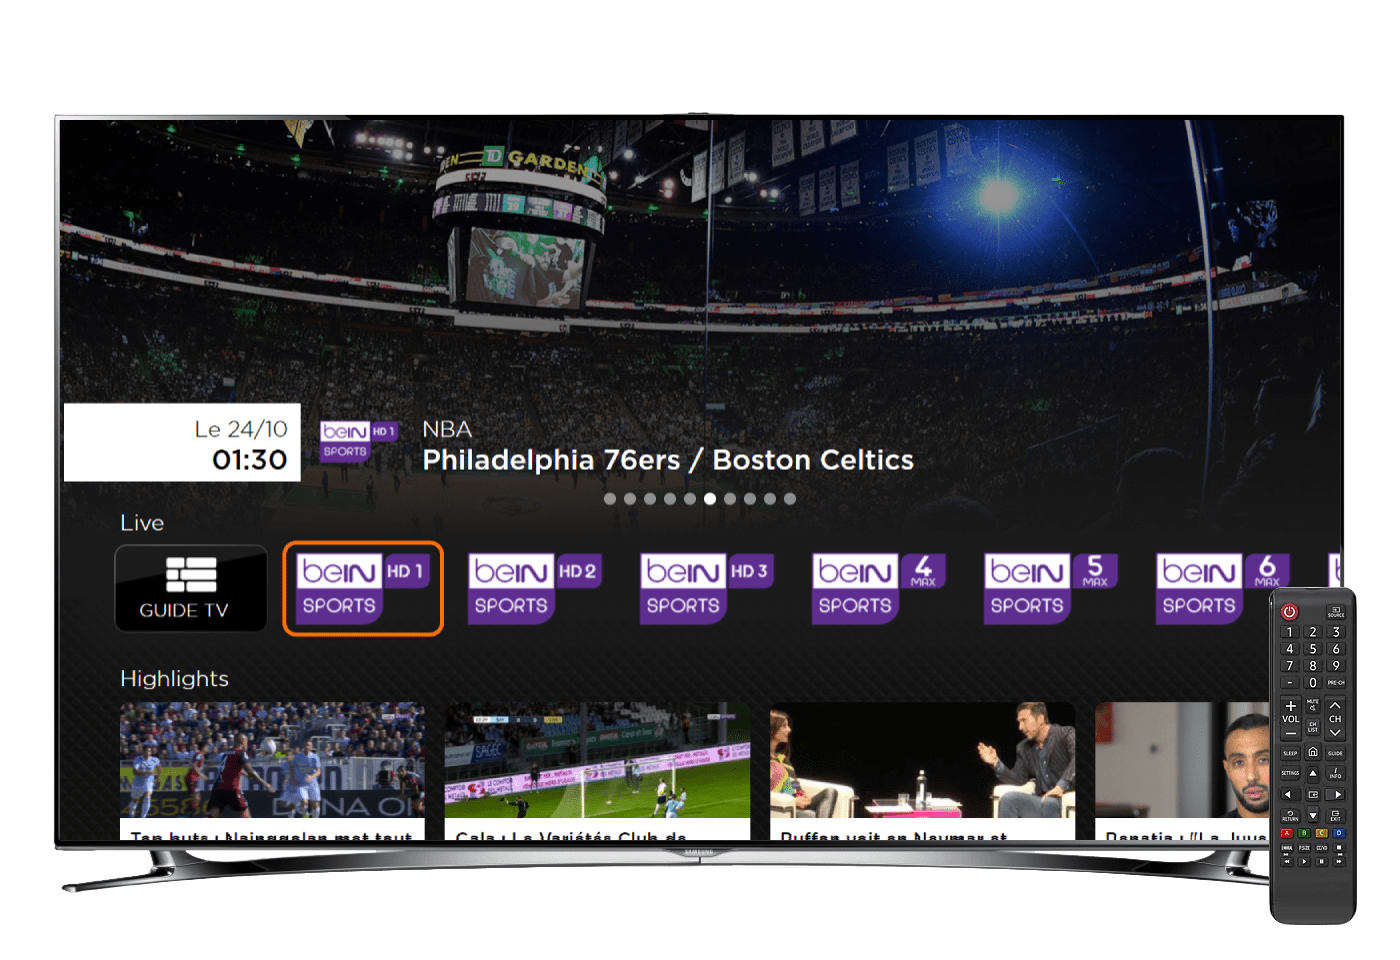 DOTSCREEN has developed beIN Sports's new beIN Connect User Interface, now live on LG, Samsung, HiSense Smart TVs & Playstation 4 in France